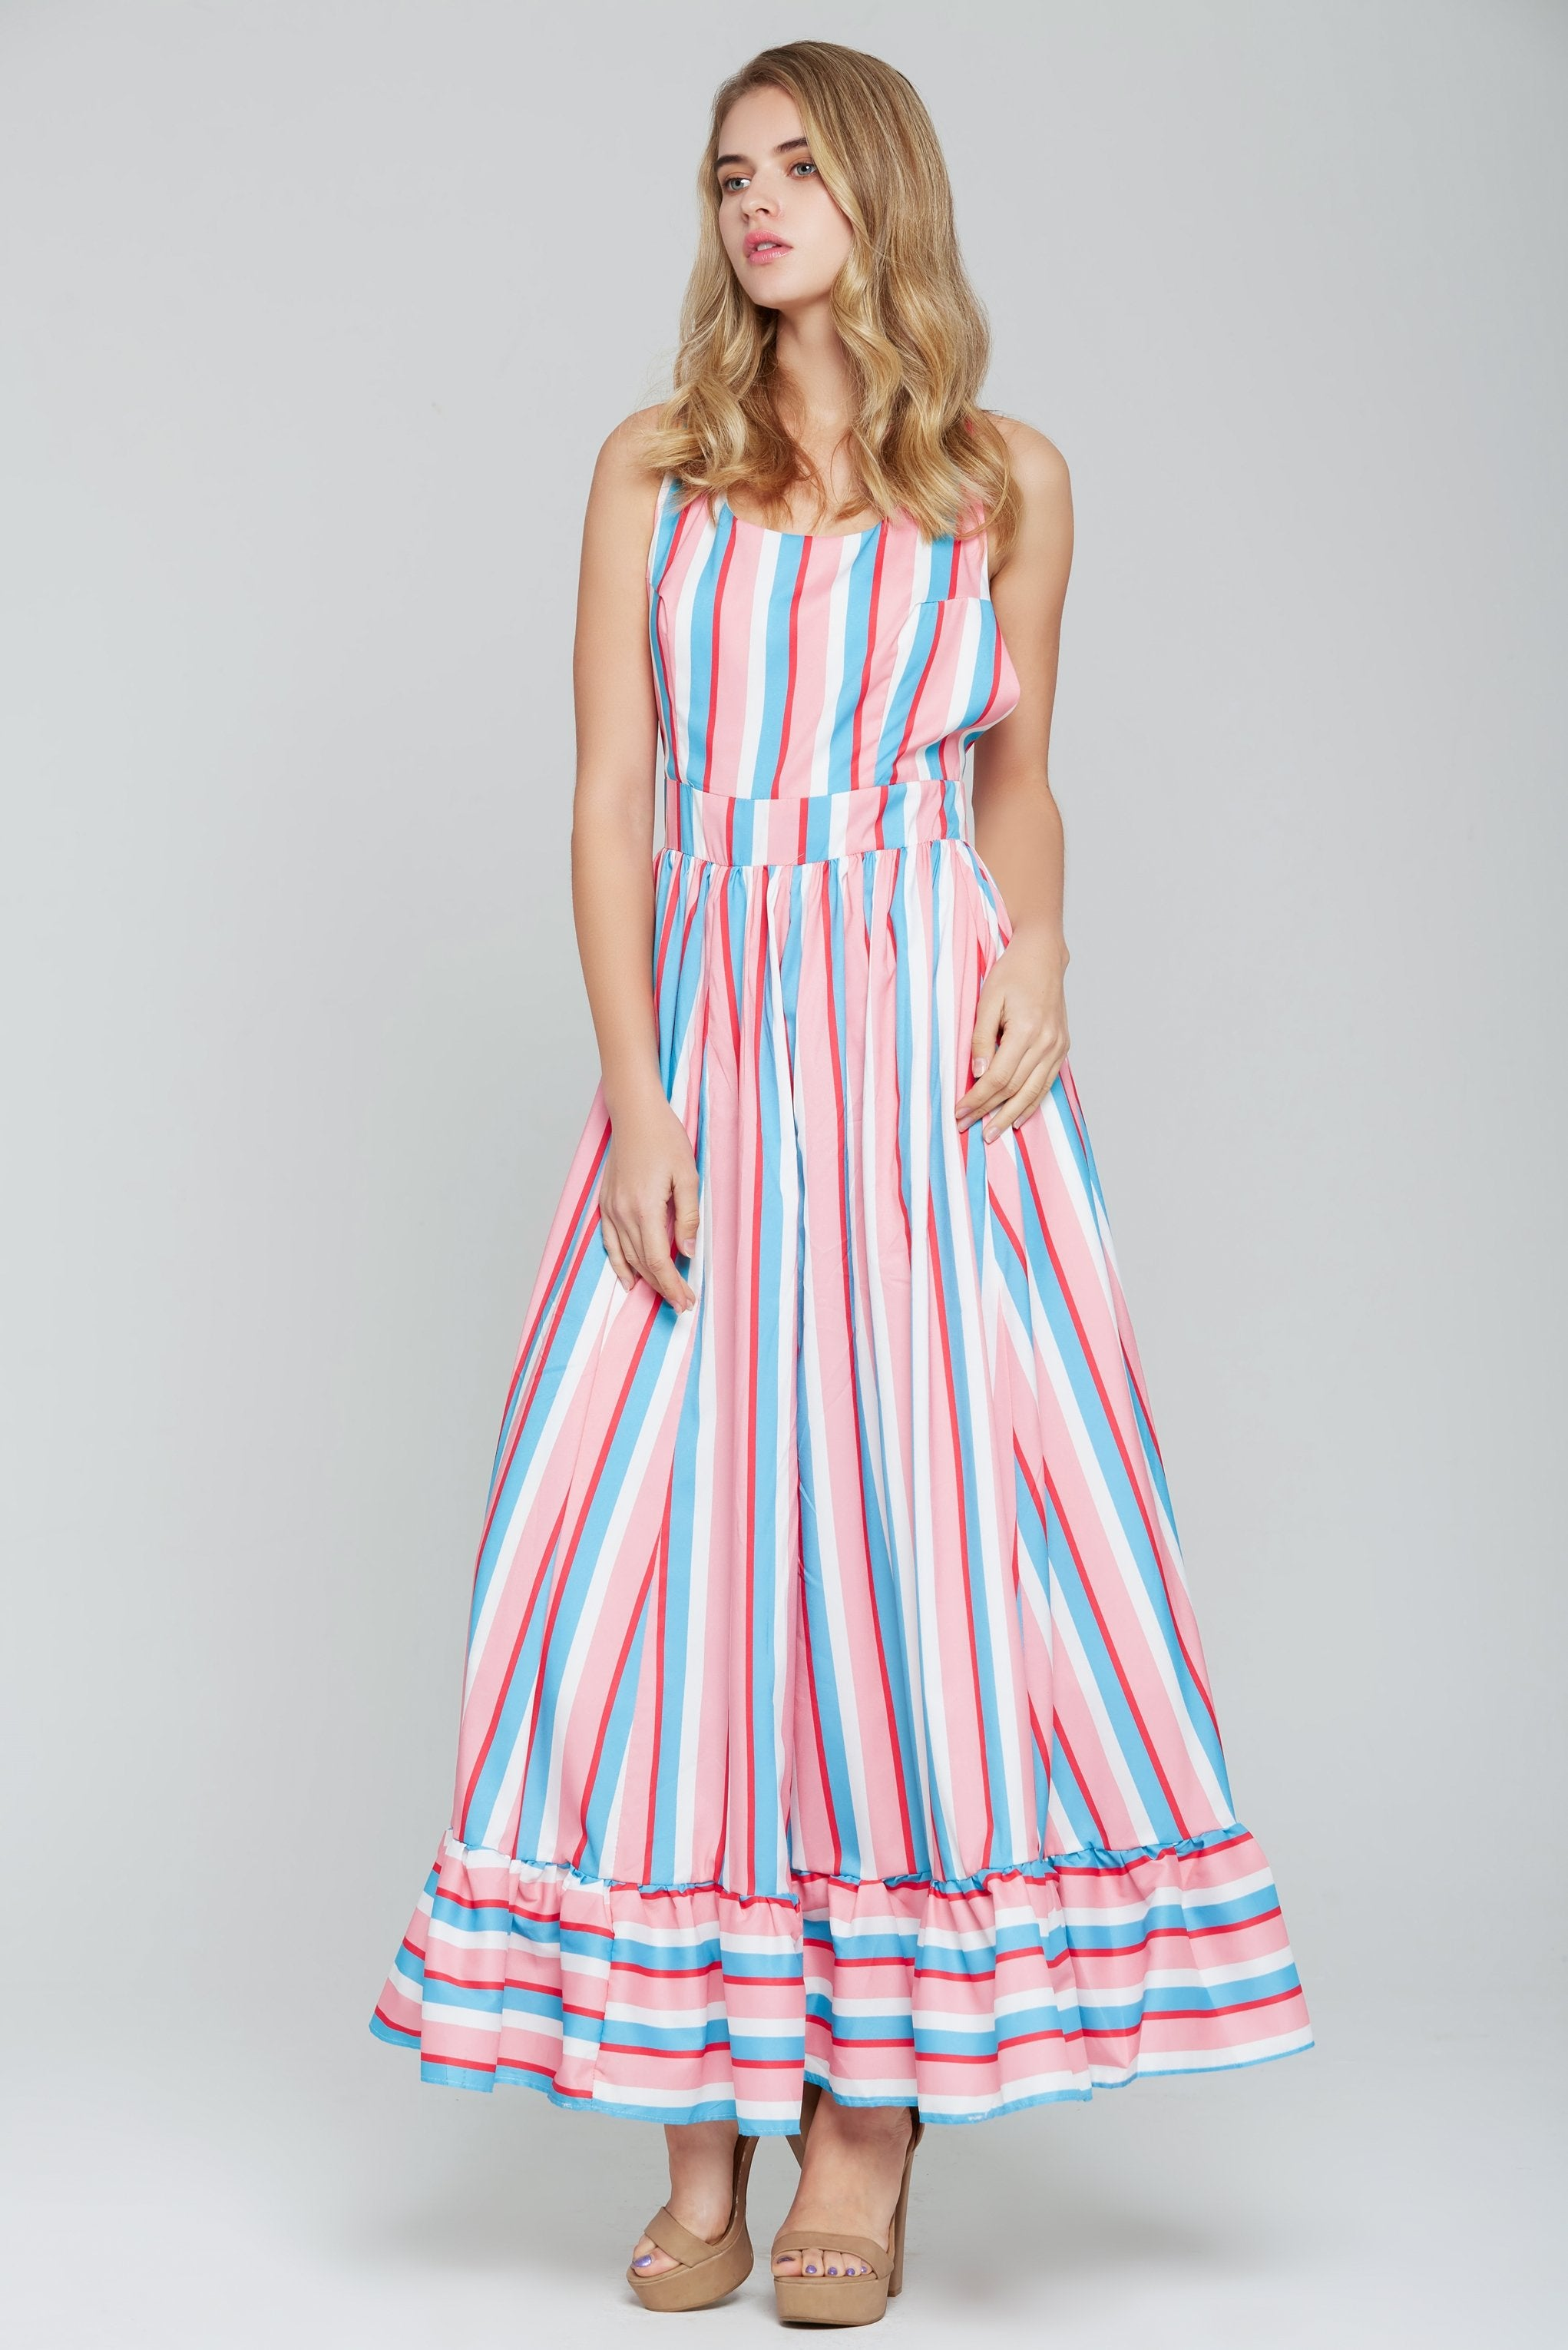 Candy Pink and Blue Striped Halter Maxi Dress